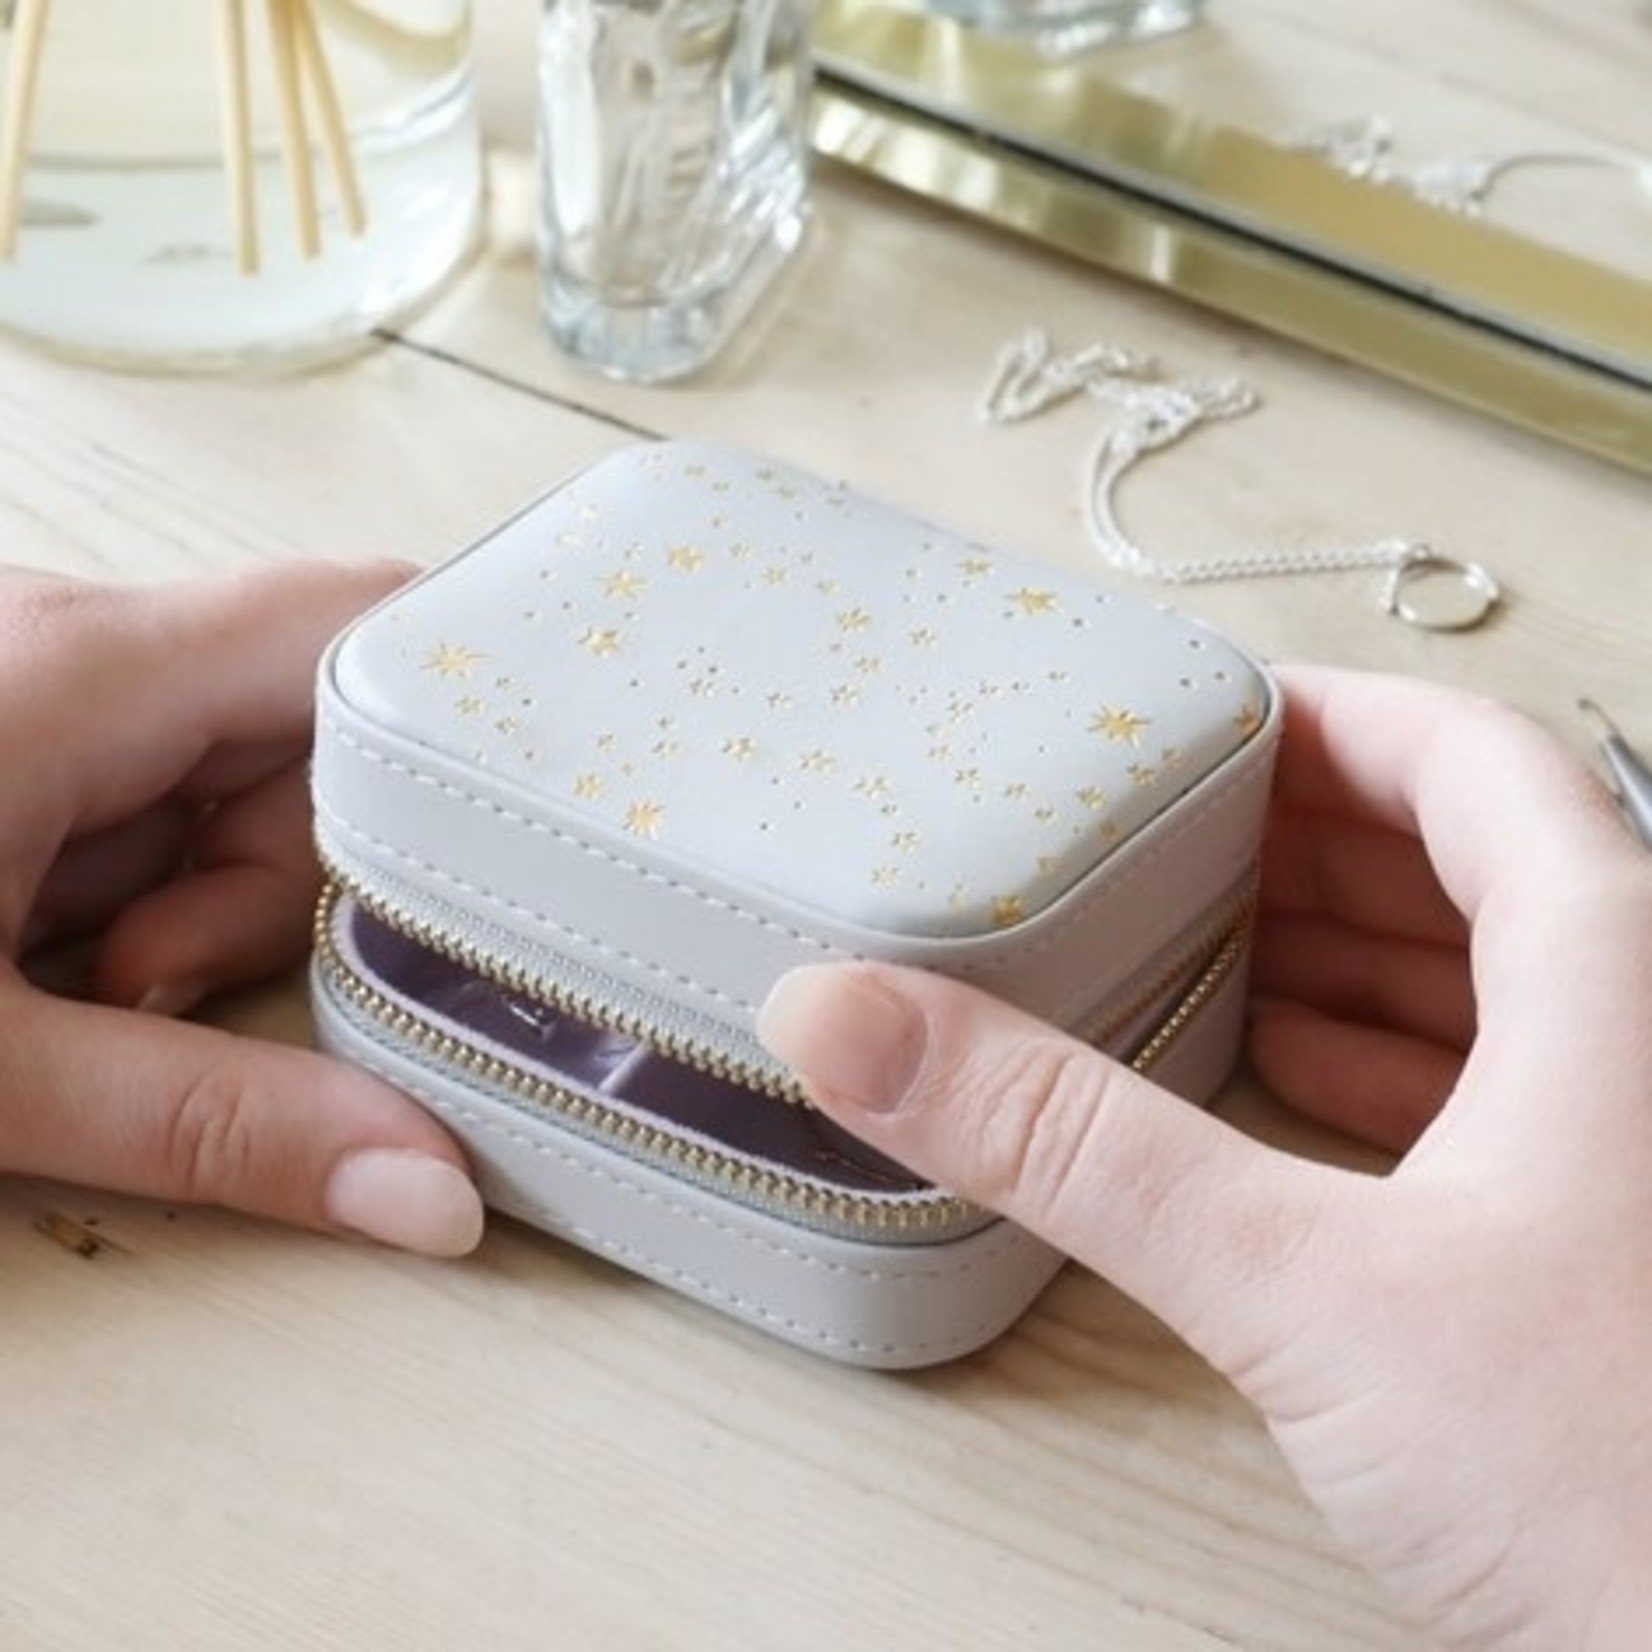 EM & ELLE Grey With Gold Stars Lilac Small Square Travel Jewelry Case